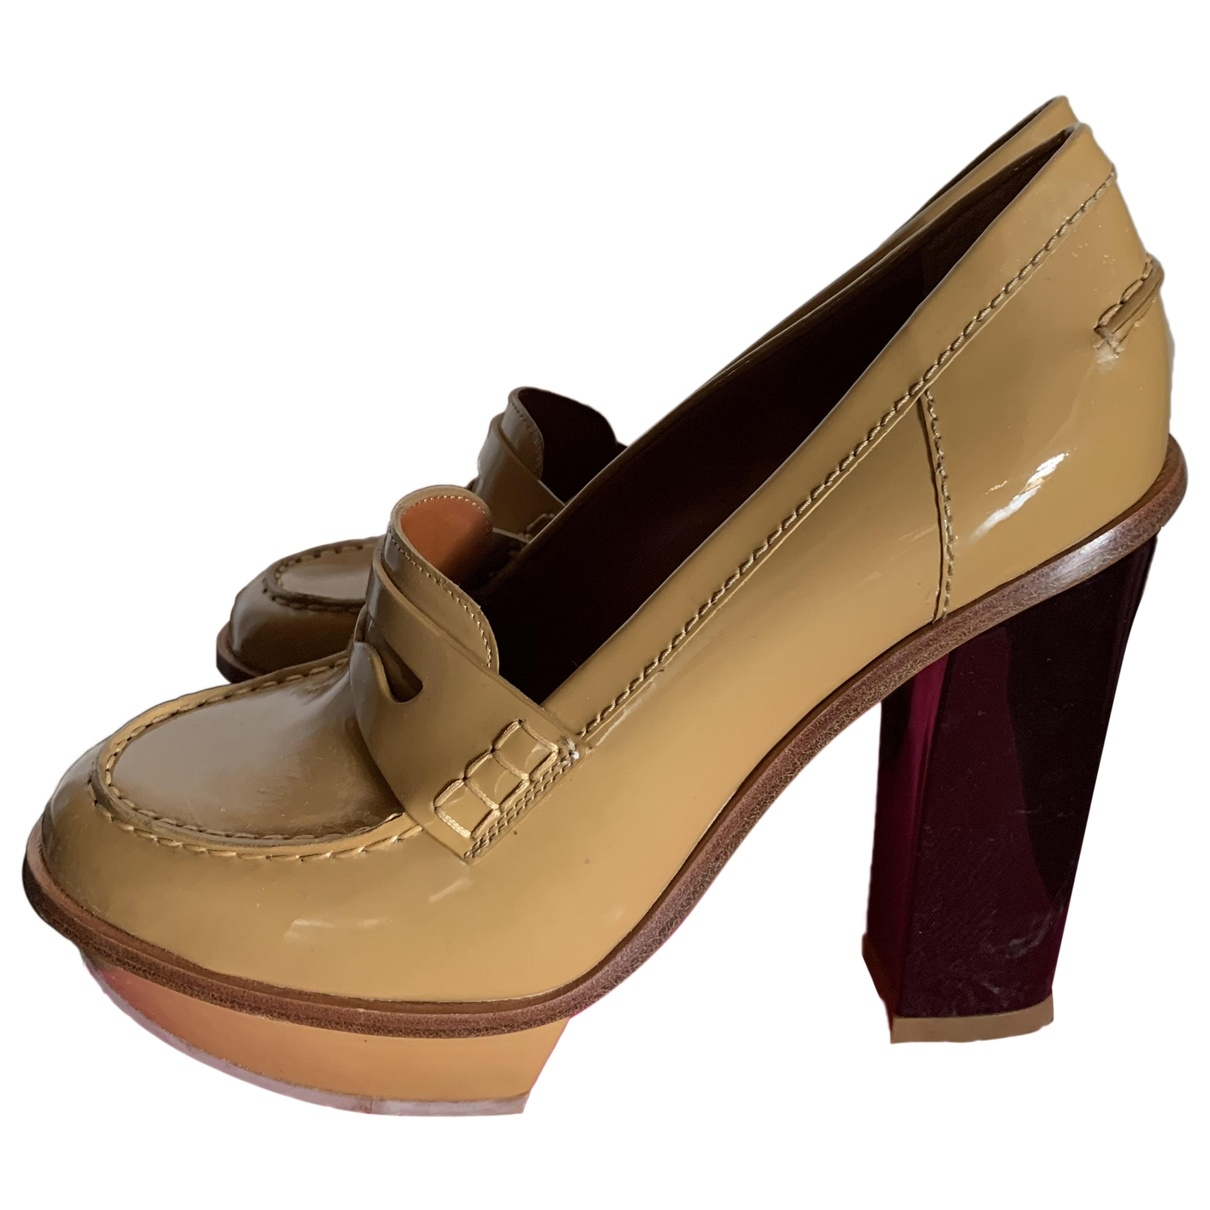 Mulberry \N Beige Patent leather Heels for Women 40 EU